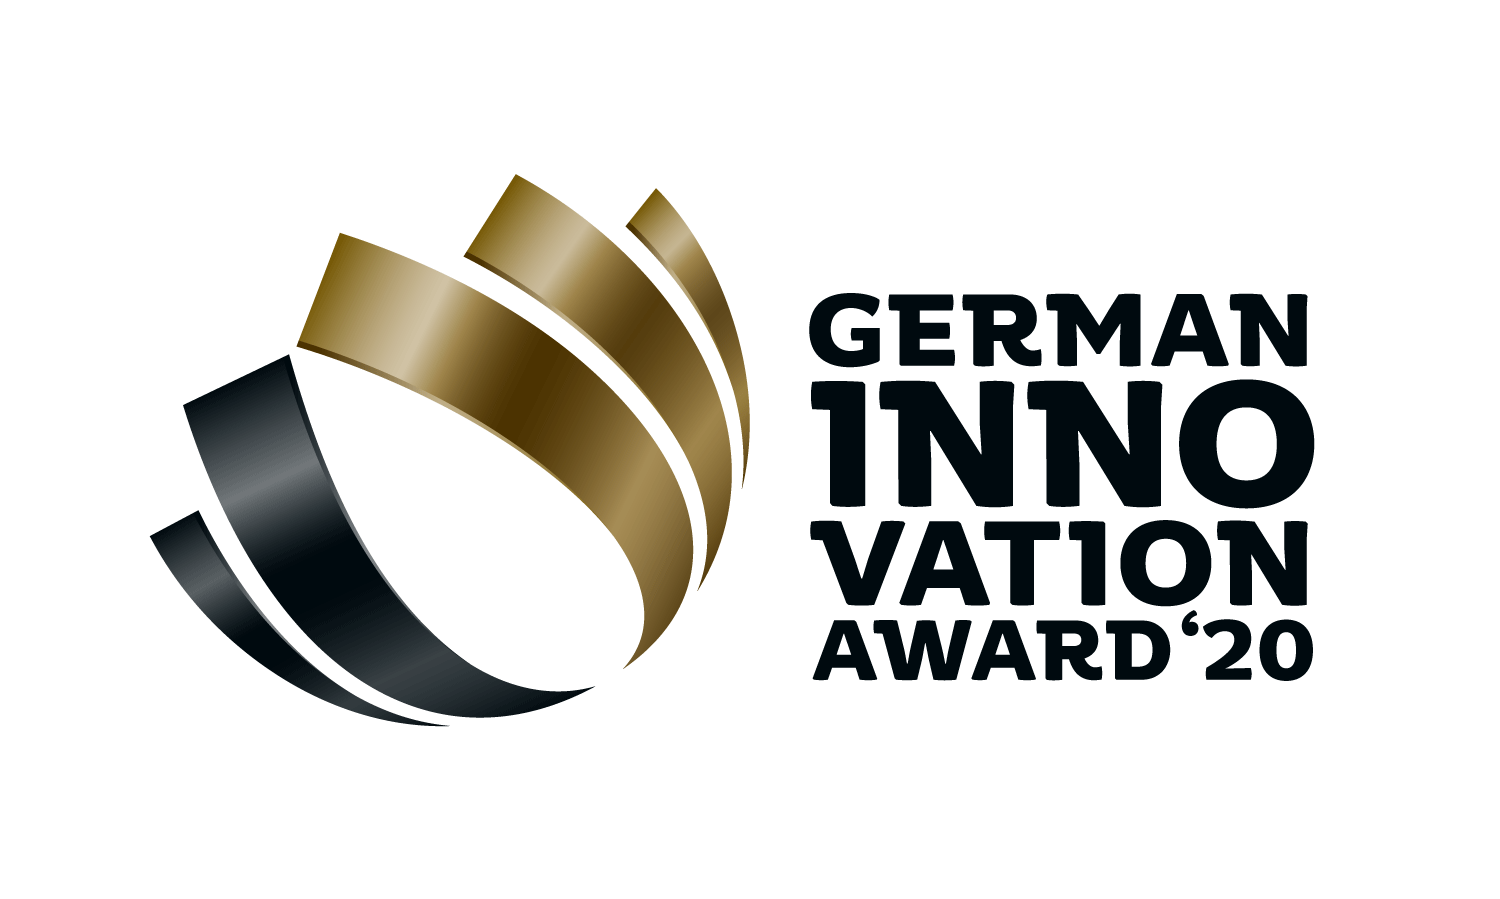 German Innovation Award Logo